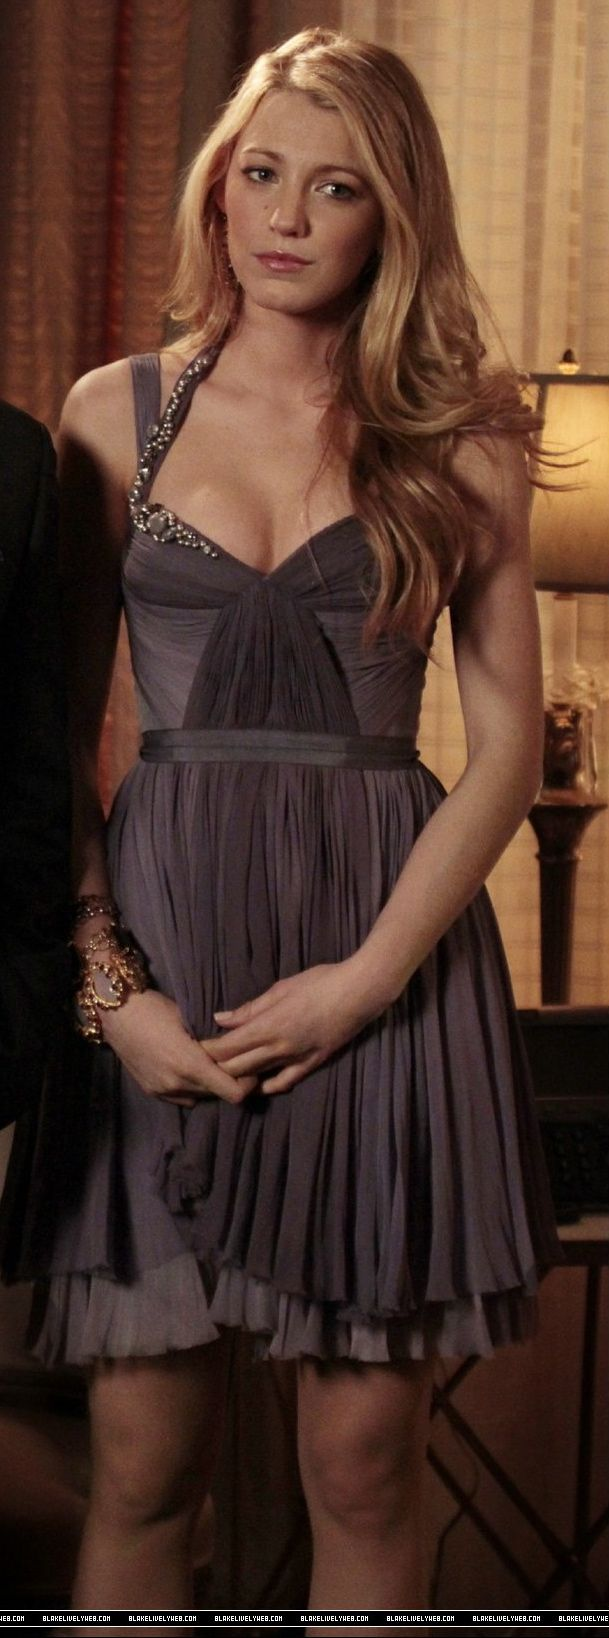 Gossip Girl Season 4 Episode 20 - The Princesses and the Frog